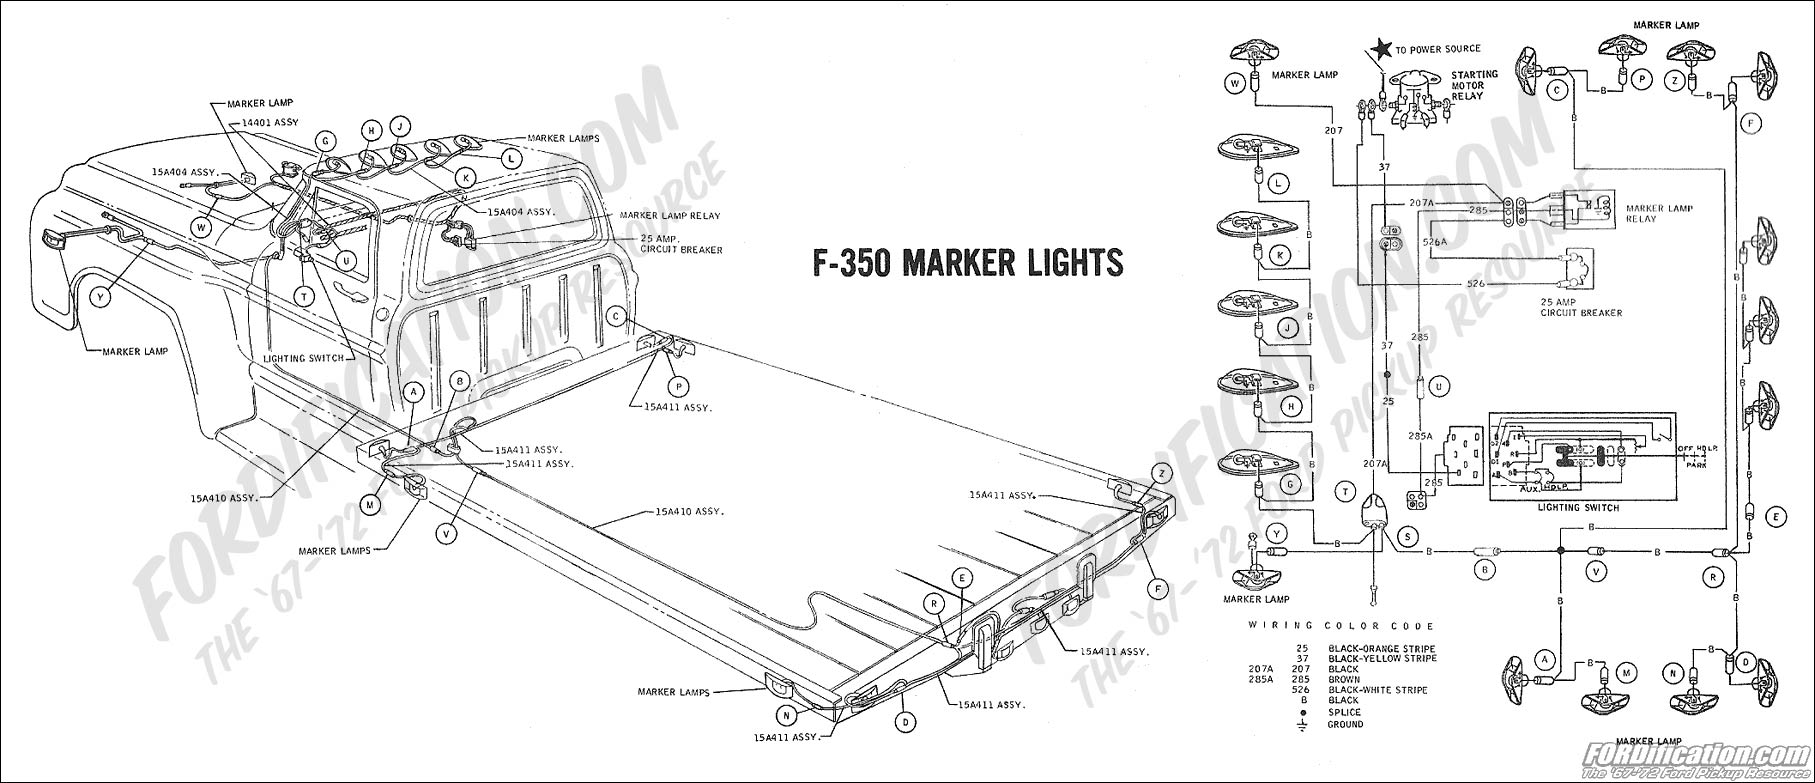 Wiring F Markers on 1970 Gmc Truck Wiring Diagram